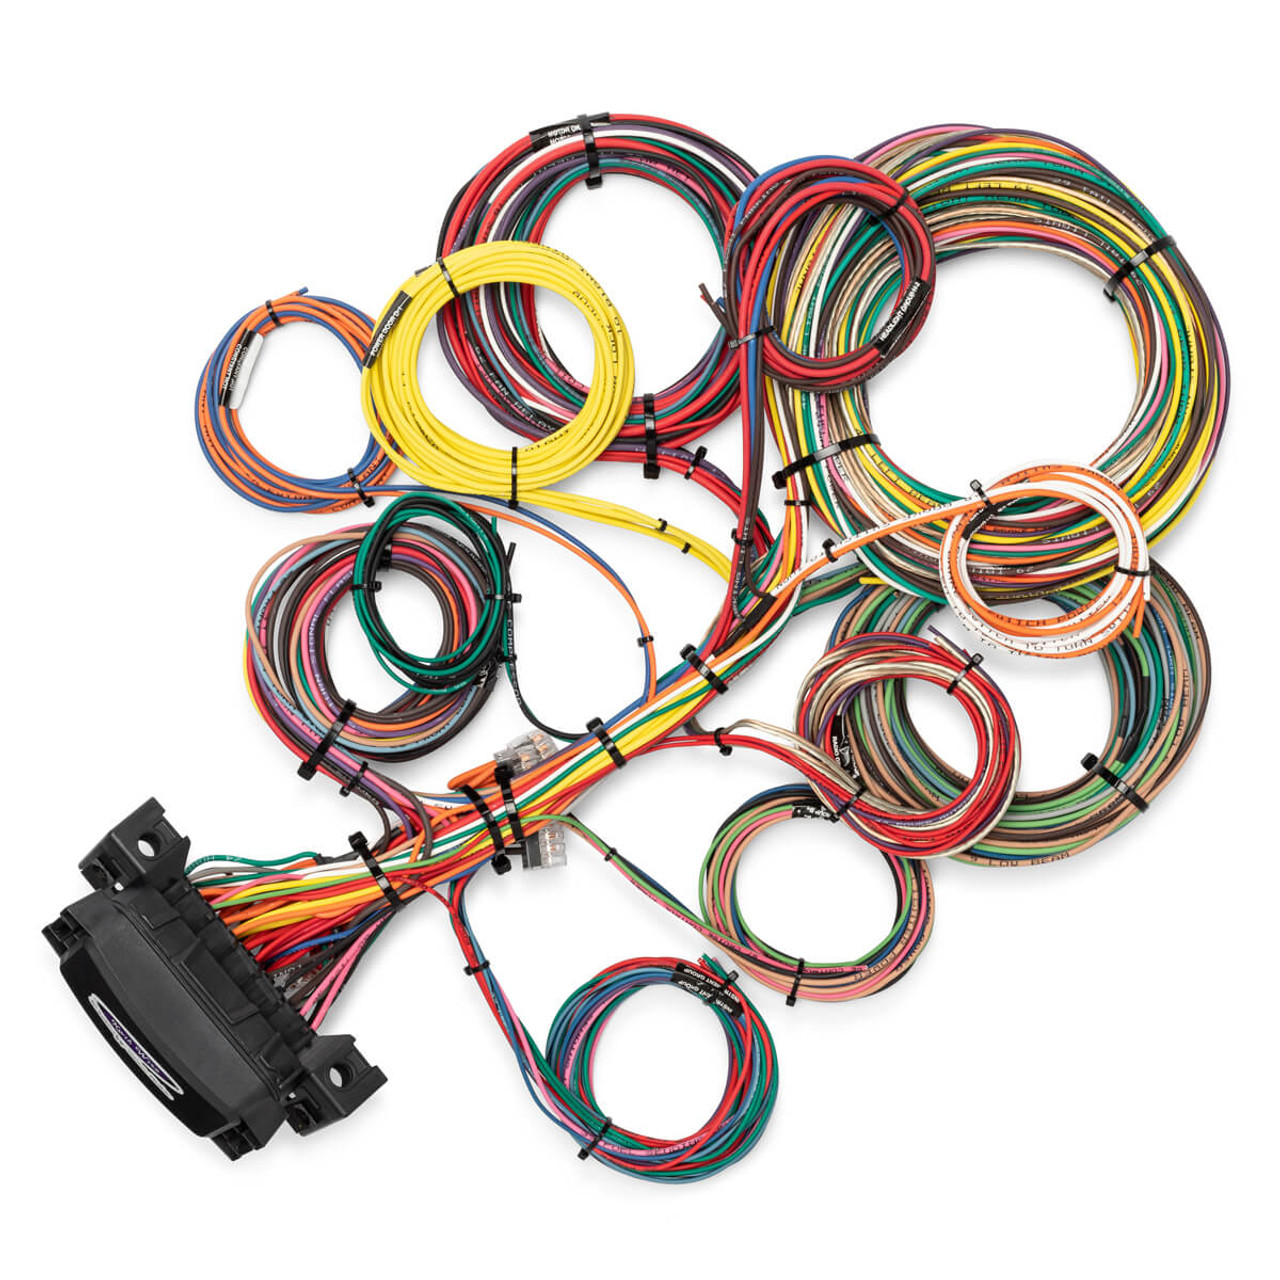 hight resolution of 26 circuit waterproof wire harness kwikwire com electrify your ride electrical wire harness design basics electrical wire harness